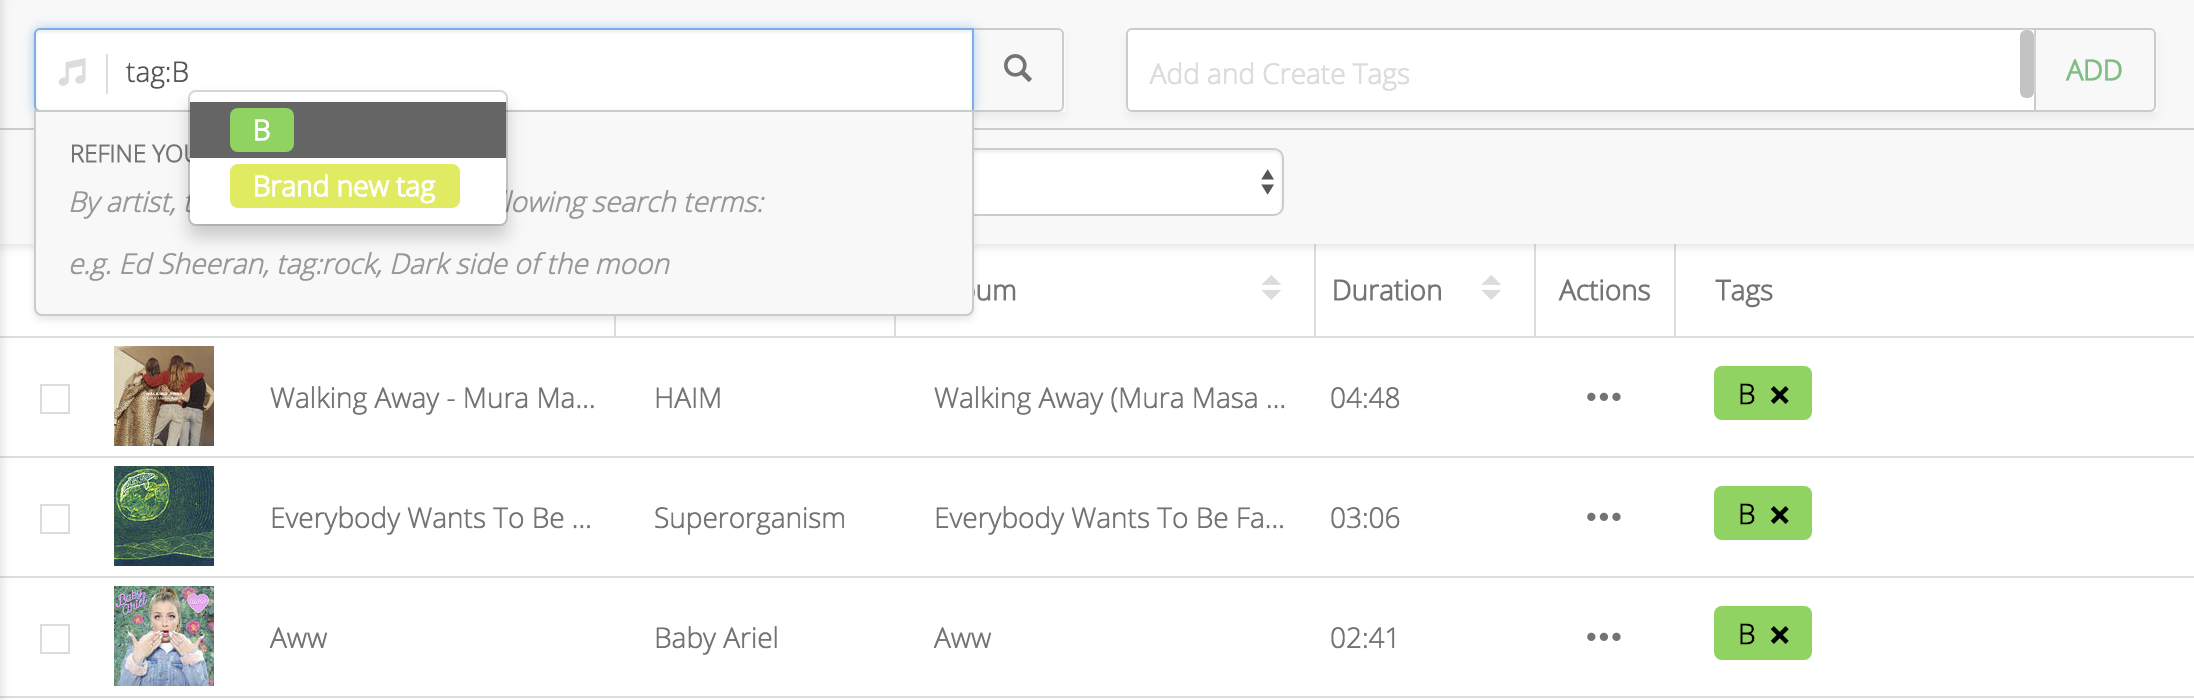 Searching Tagged Tracks